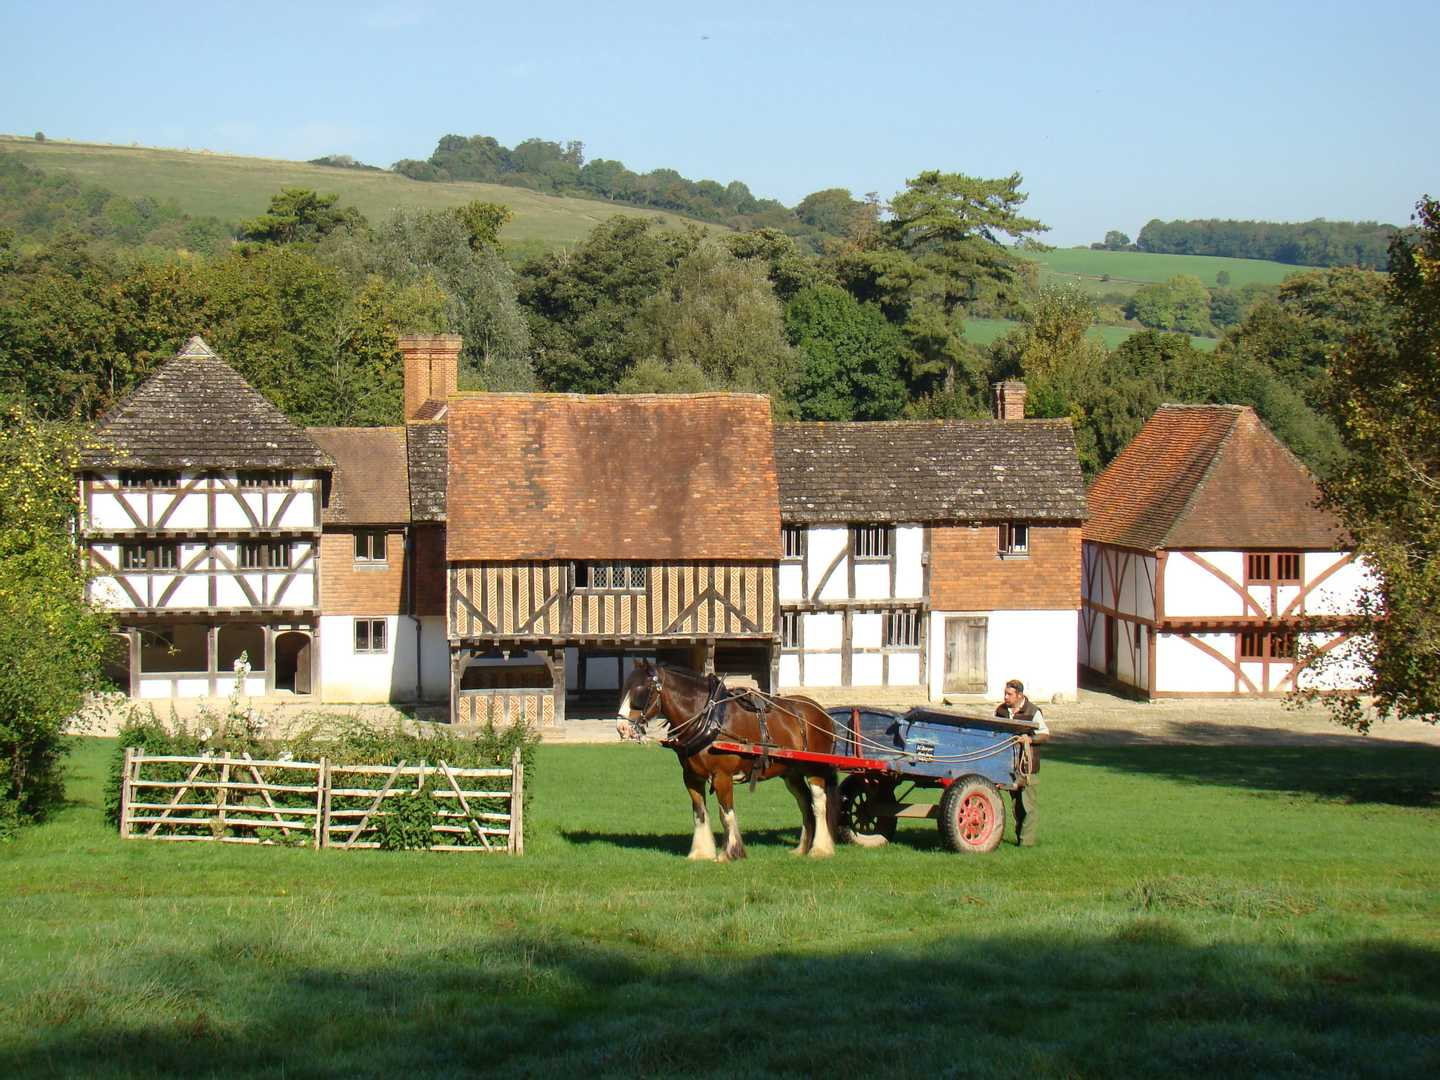 Horse and cart in front of rural historic buildings